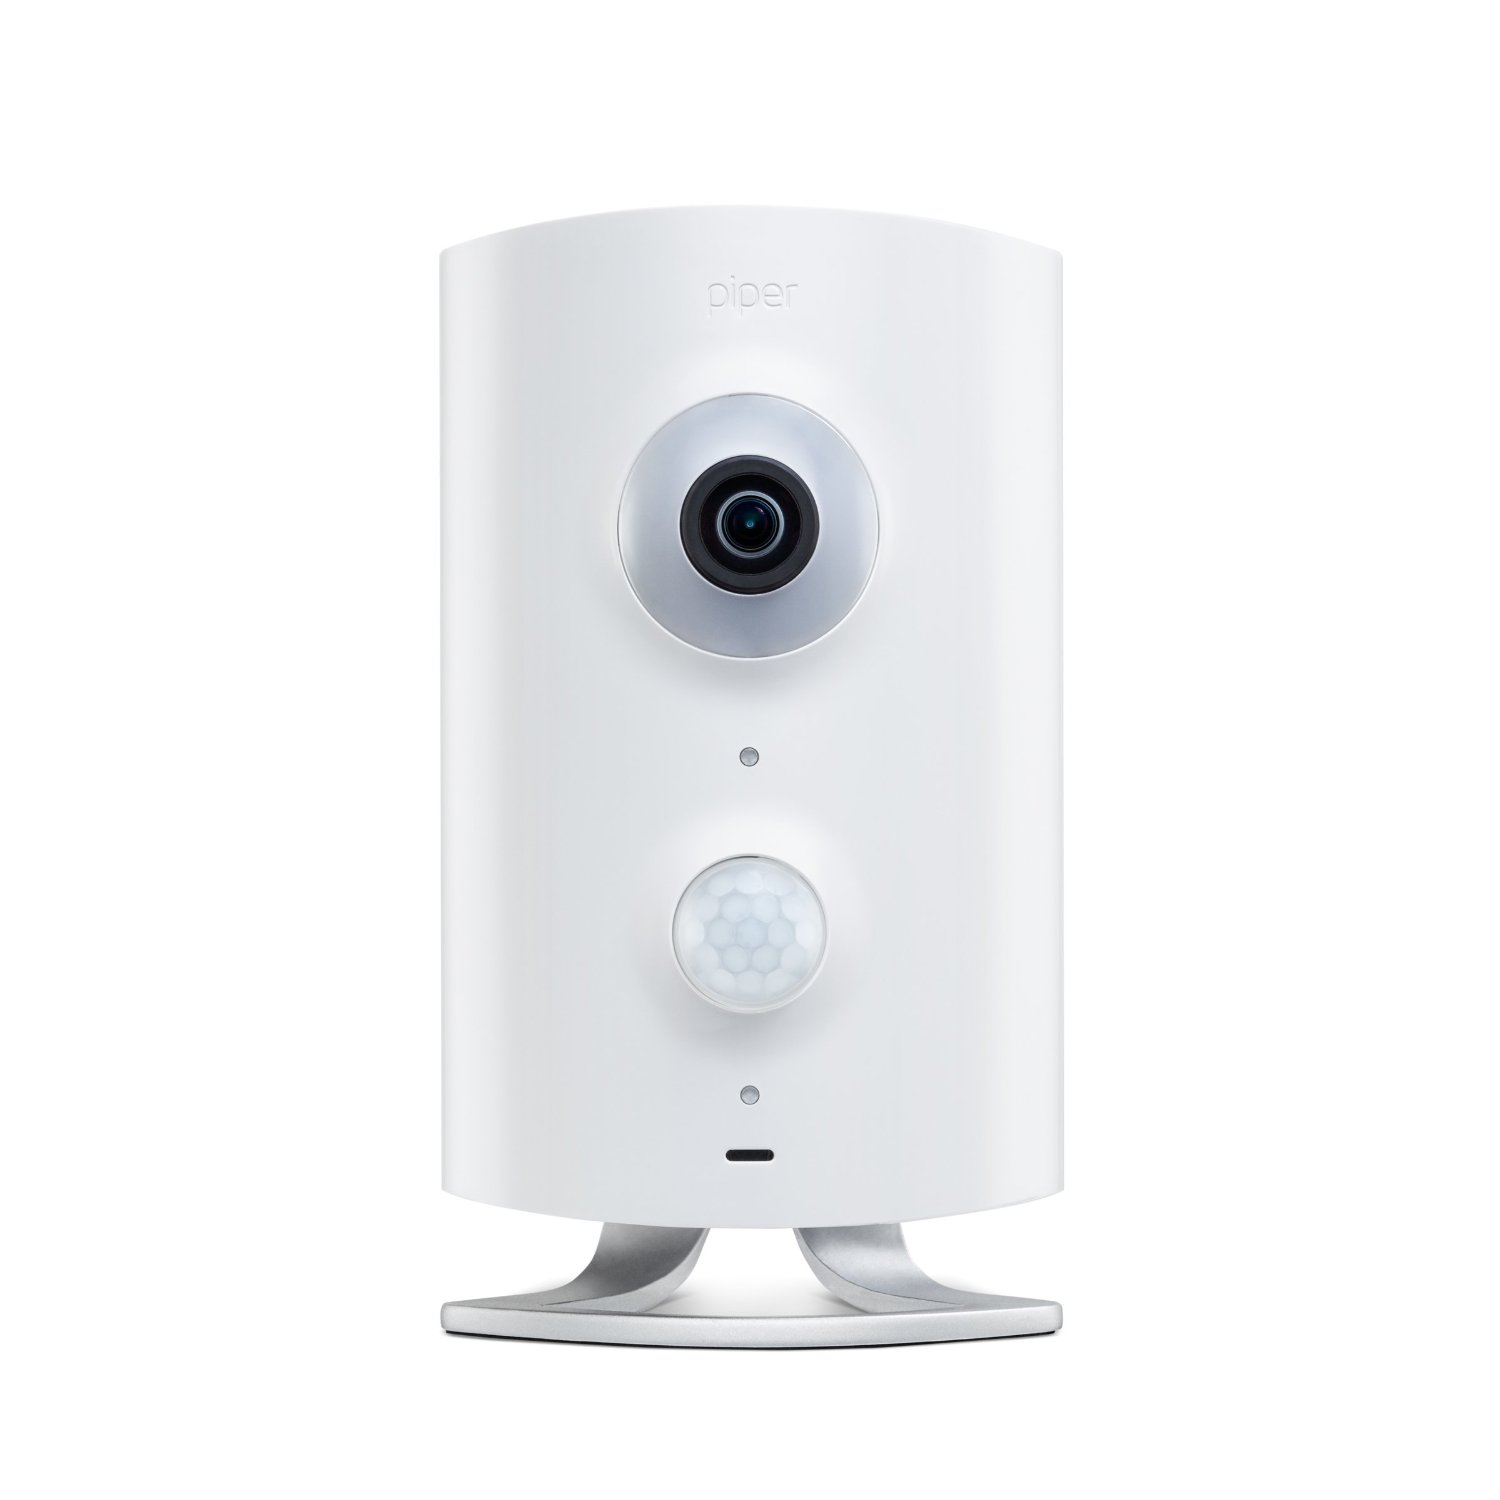 Piper Smart Home Security System with Night Vision